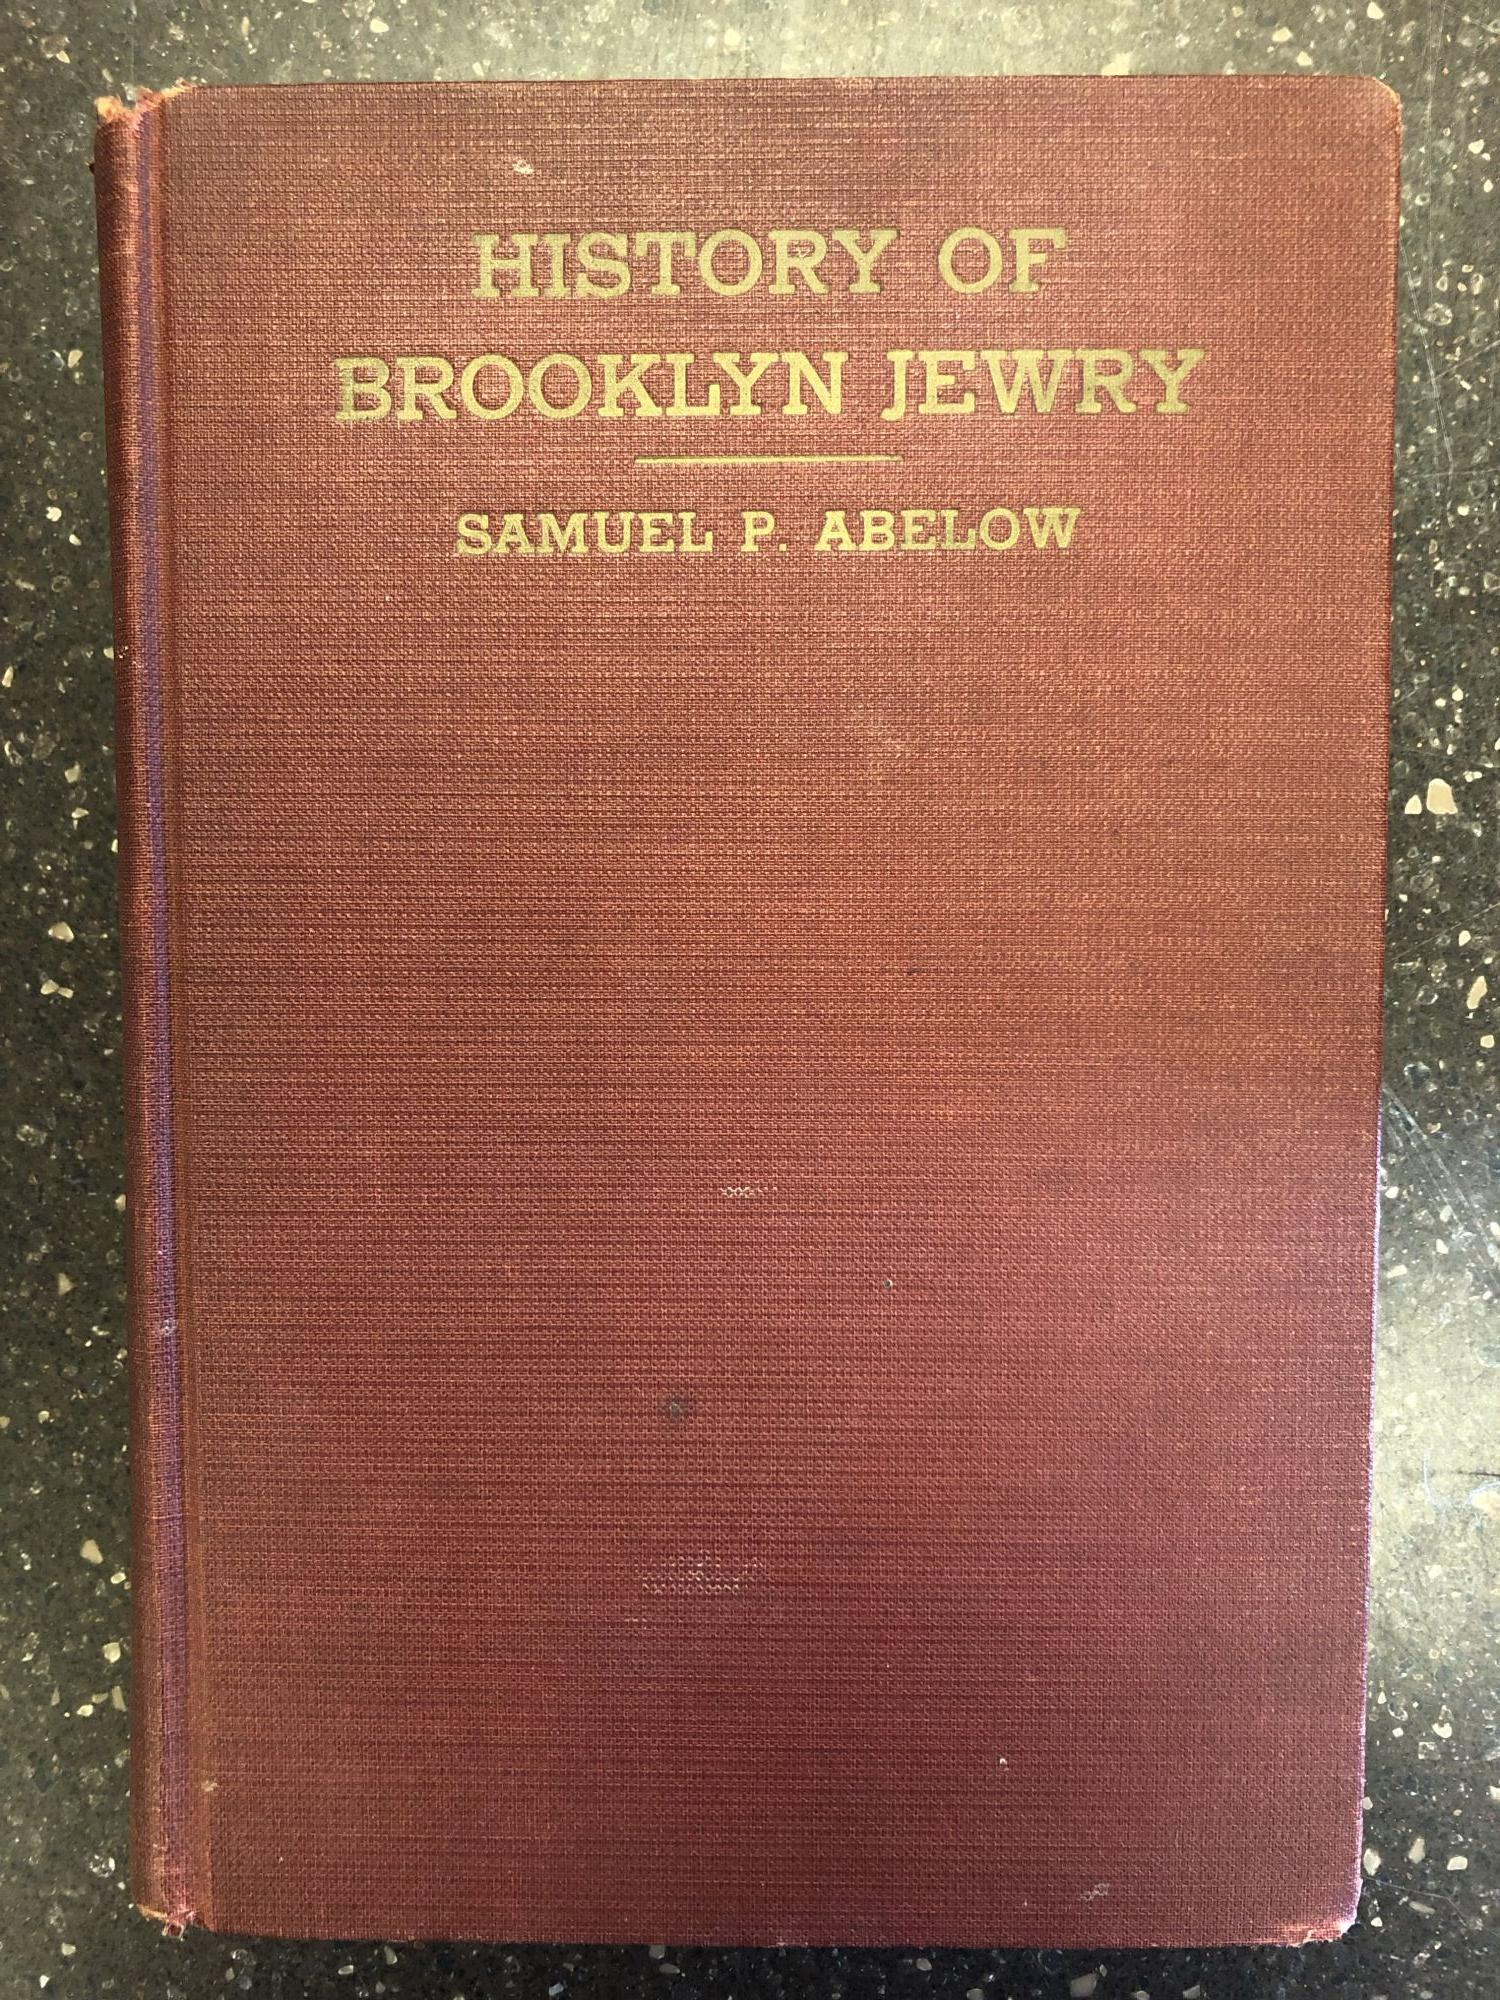 HISTORY OF BROOKLYN JEWRY. Samuel P. Abelow.